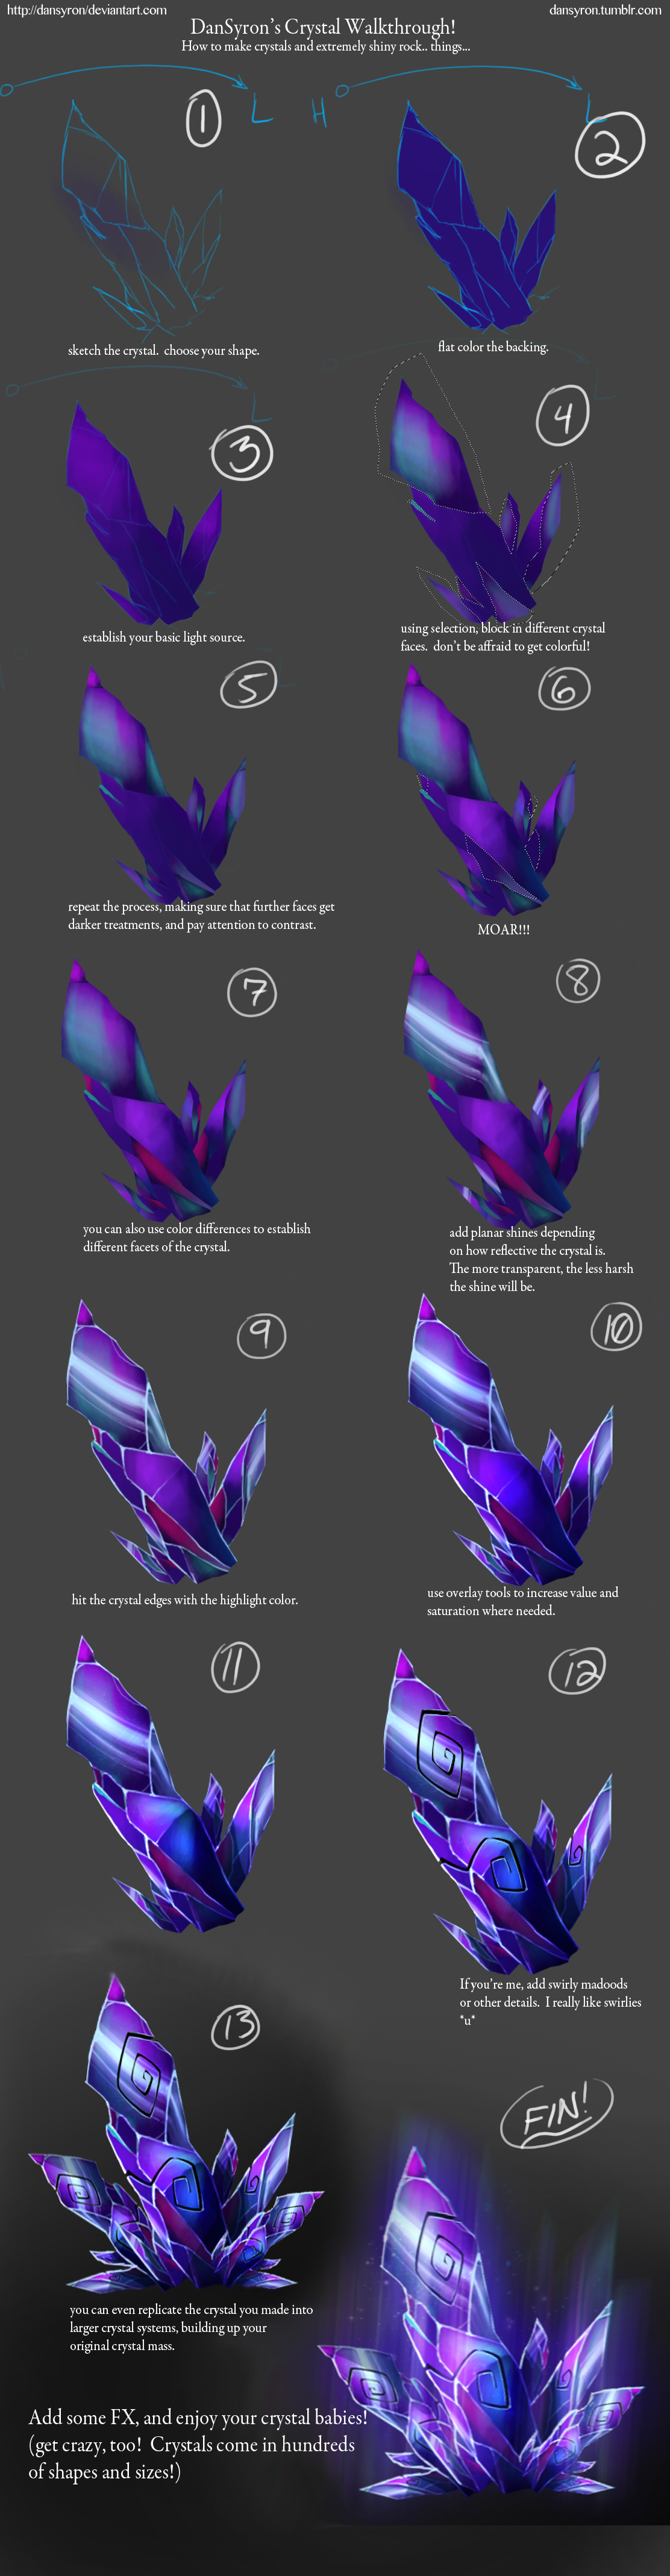 Painted Crystal Tutorial